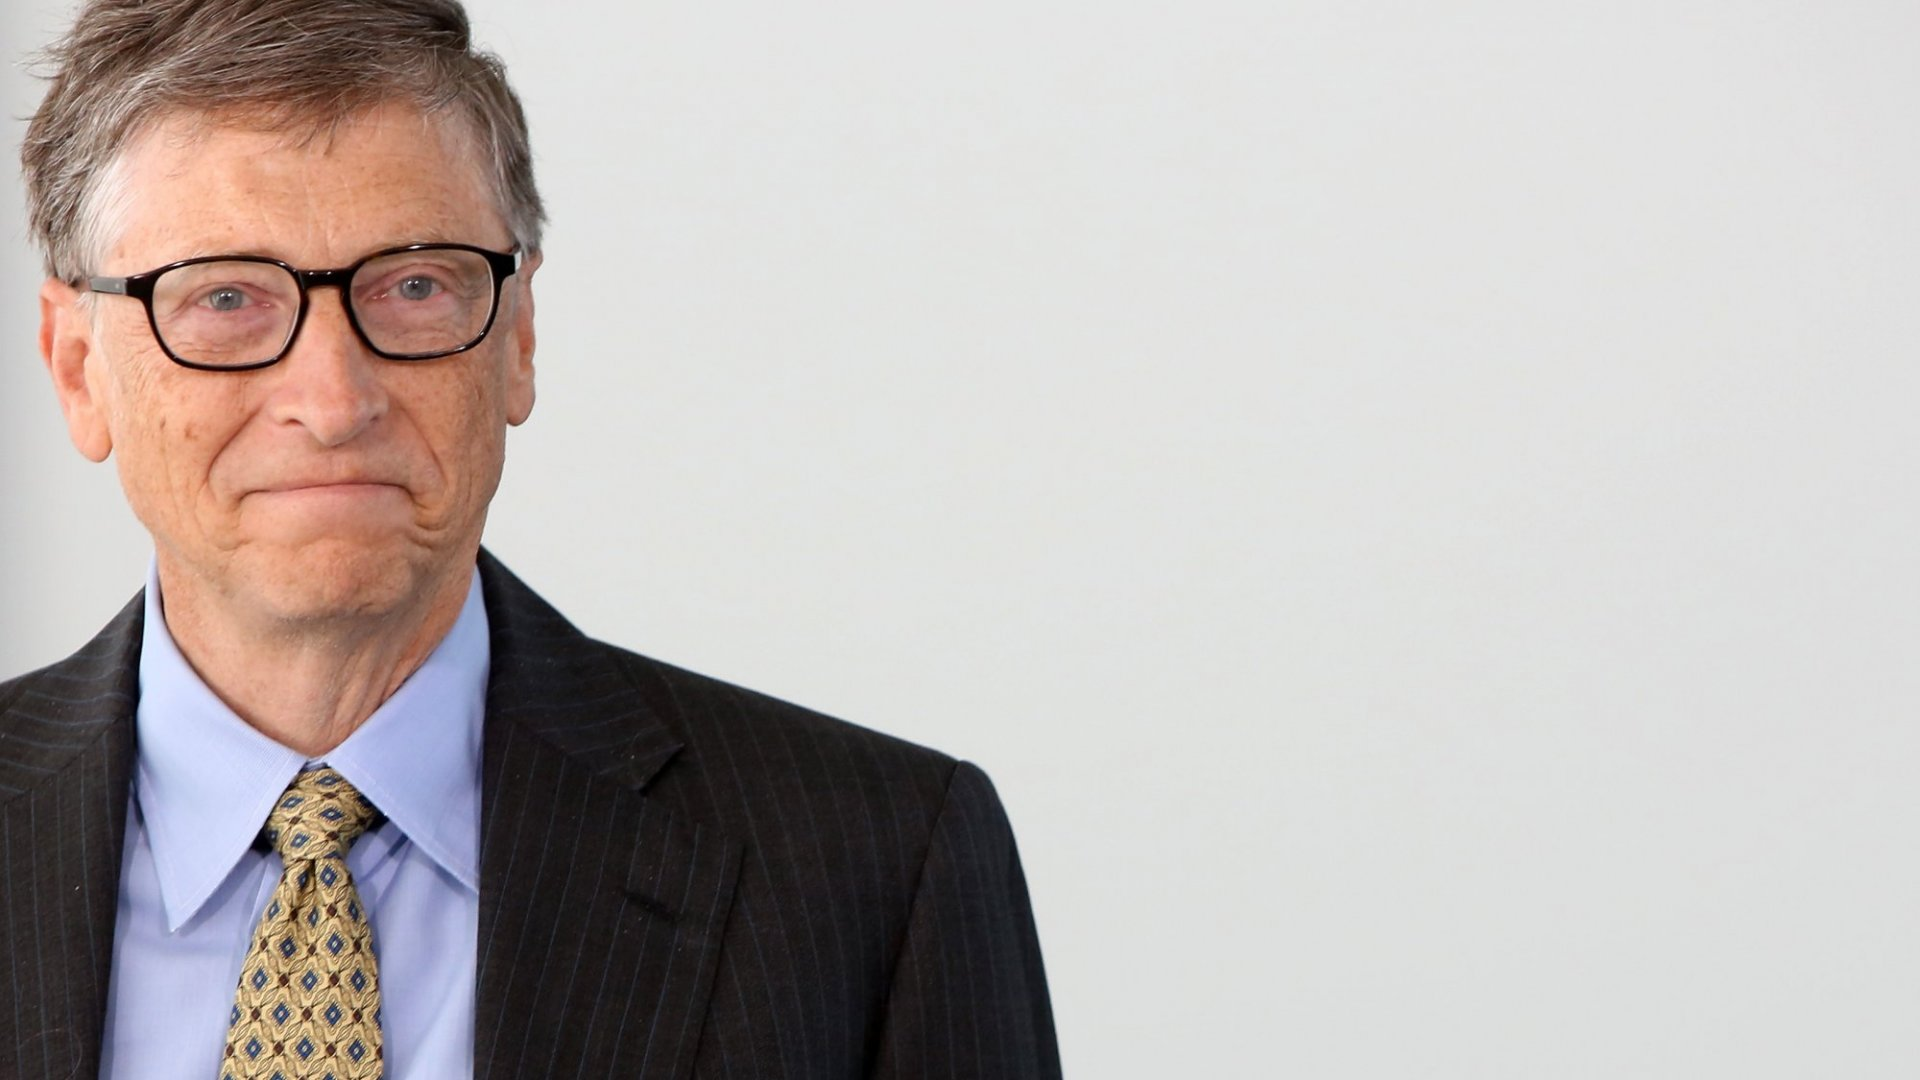 The 1 Item Bill Gates Almost Always Brings Along When Going On Vacation